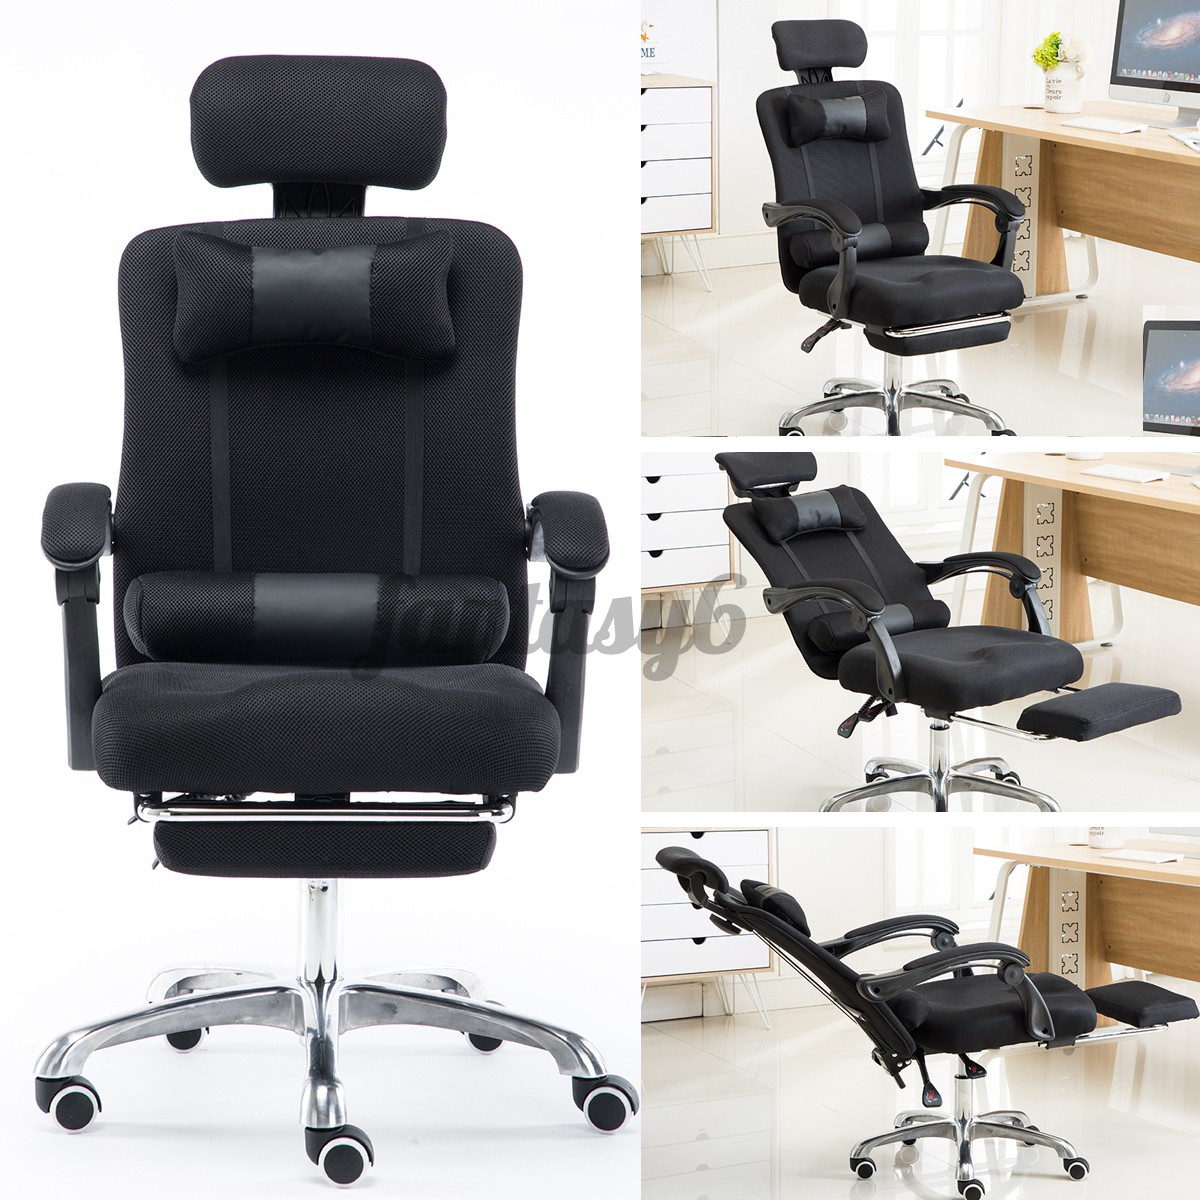 Image of: Adjustable Office Chair Mesh Seat Recliner Executive Racing Gaming Computer Diy Shopee Malaysia